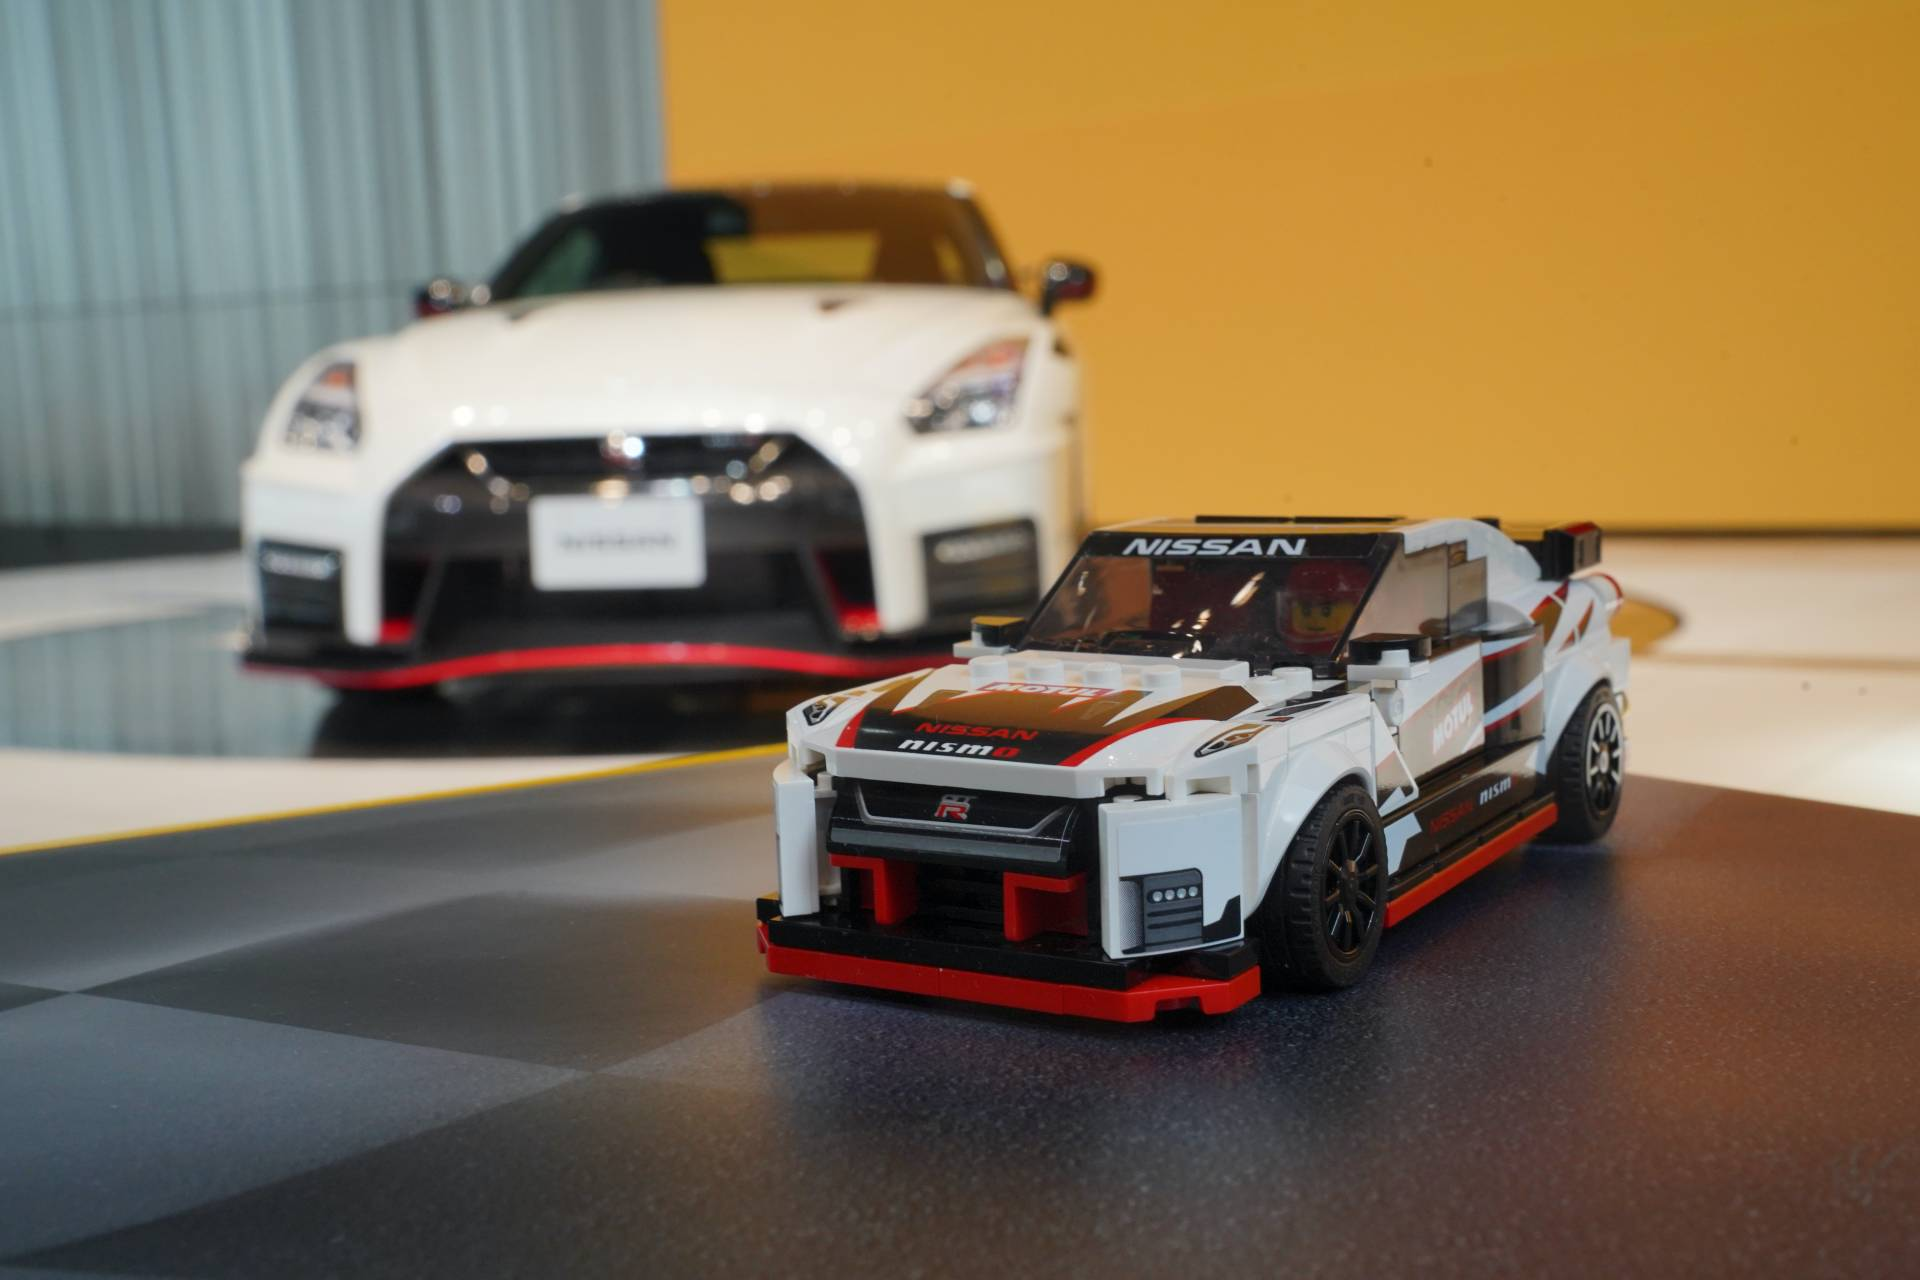 2020 Nissan Gt R Nismo And Lego Speed Champions Nissan Gt R Nismo 2